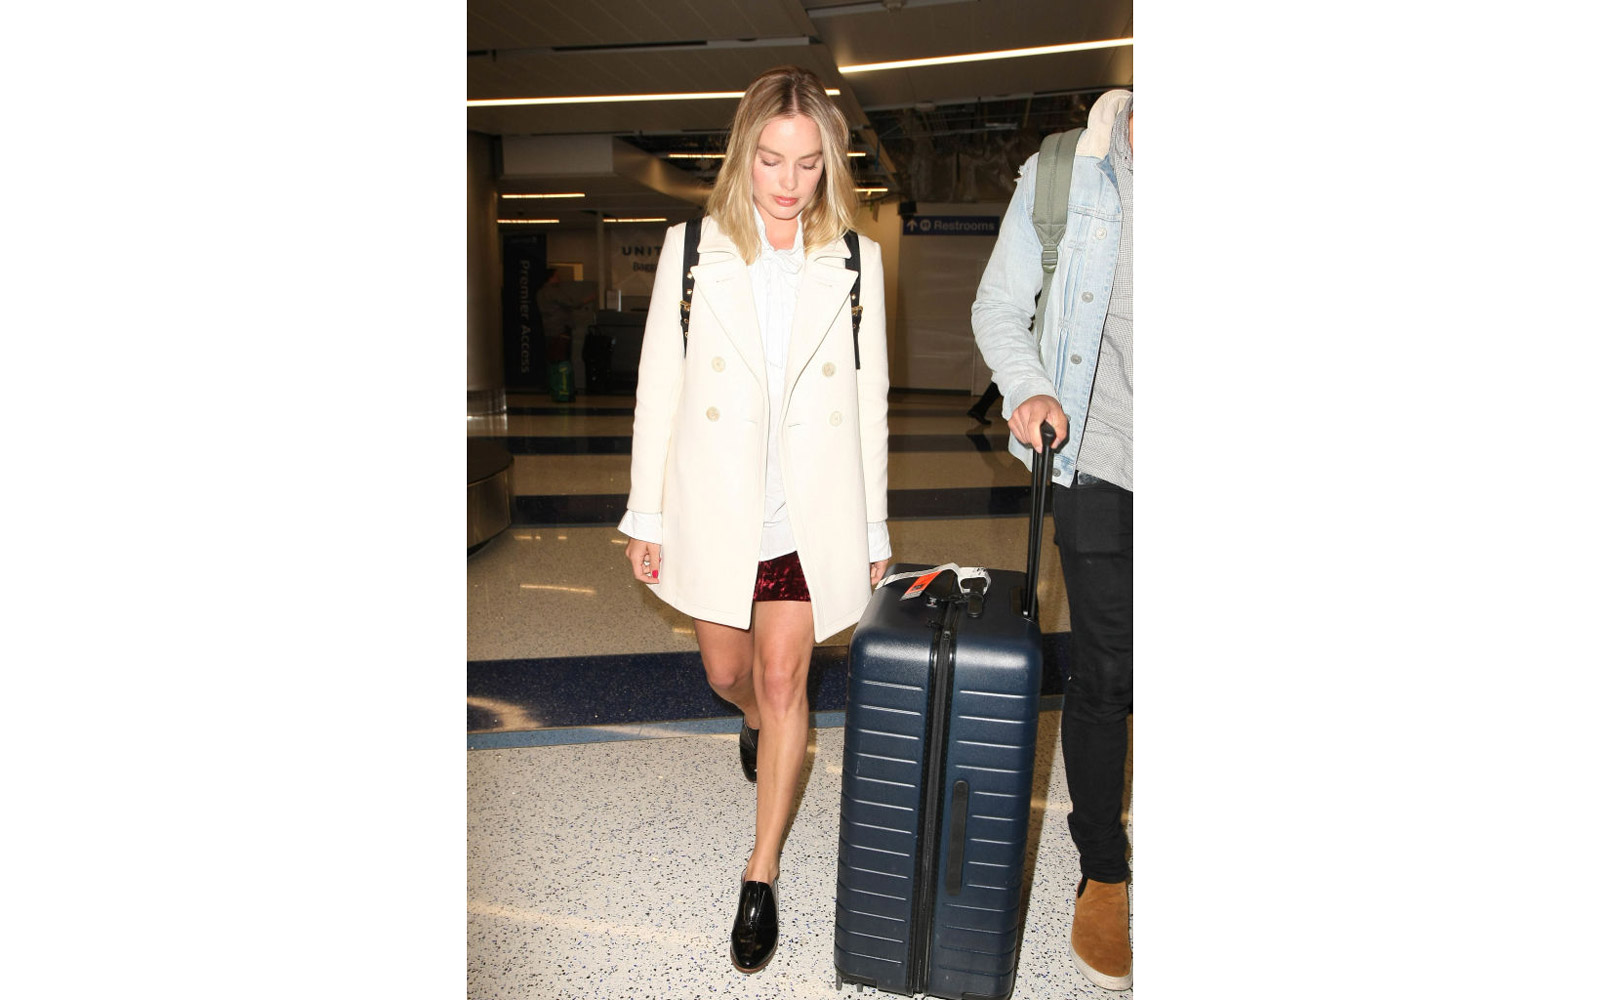 LOS ANGELES, CA - APRIL 26: Margot Robbie is seen at LAX on April 26, 2017 in Los Angeles, California.  (Photo by starzfly/Bauer-Griffin/GC Images)